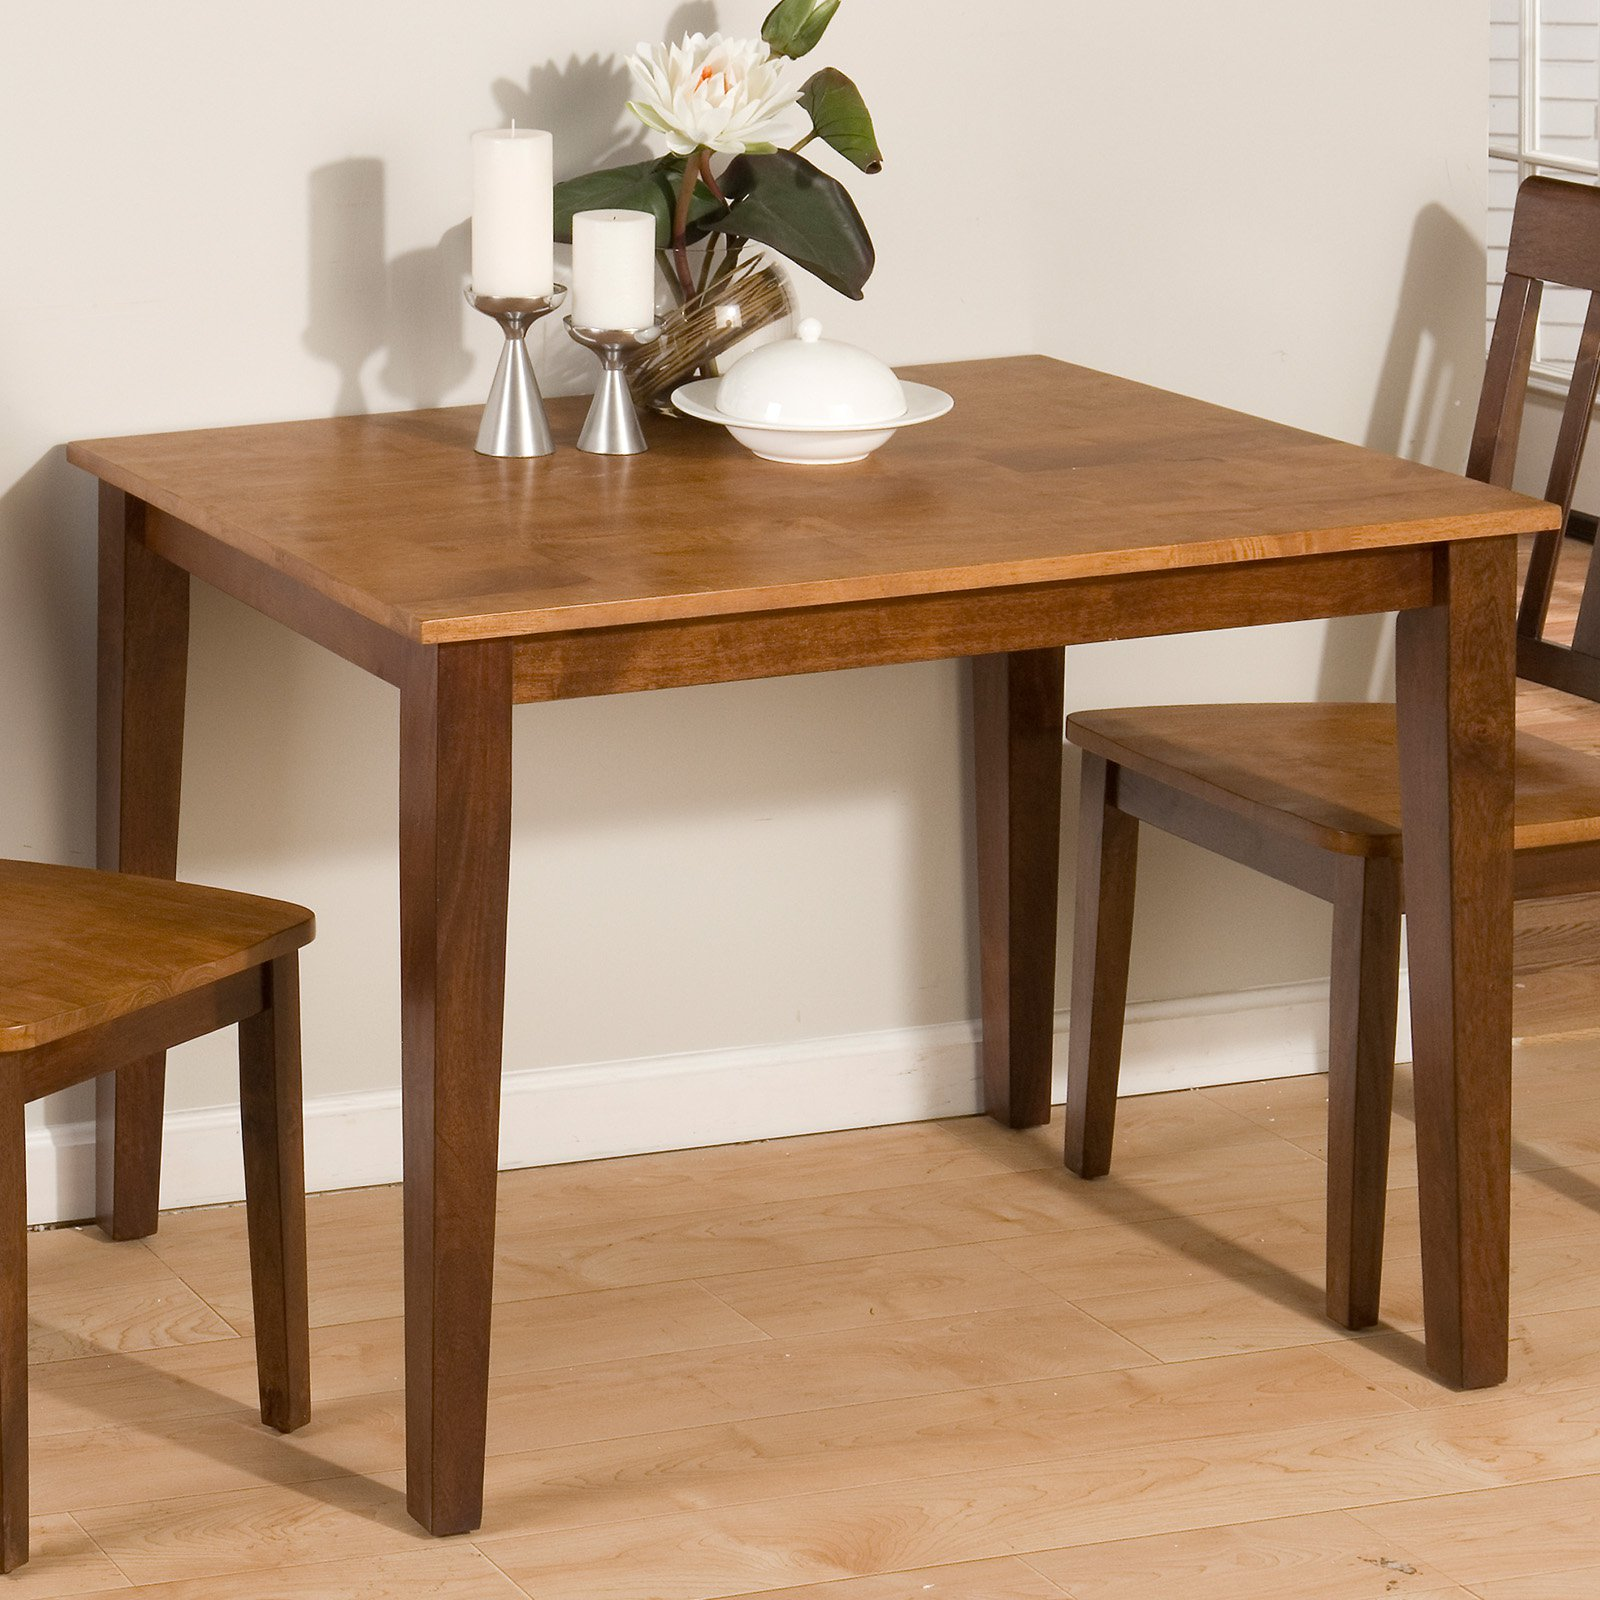 Kitchen Table For Two Kitchen Table For Two Table For Two By Daniel Liss 81 Exciting